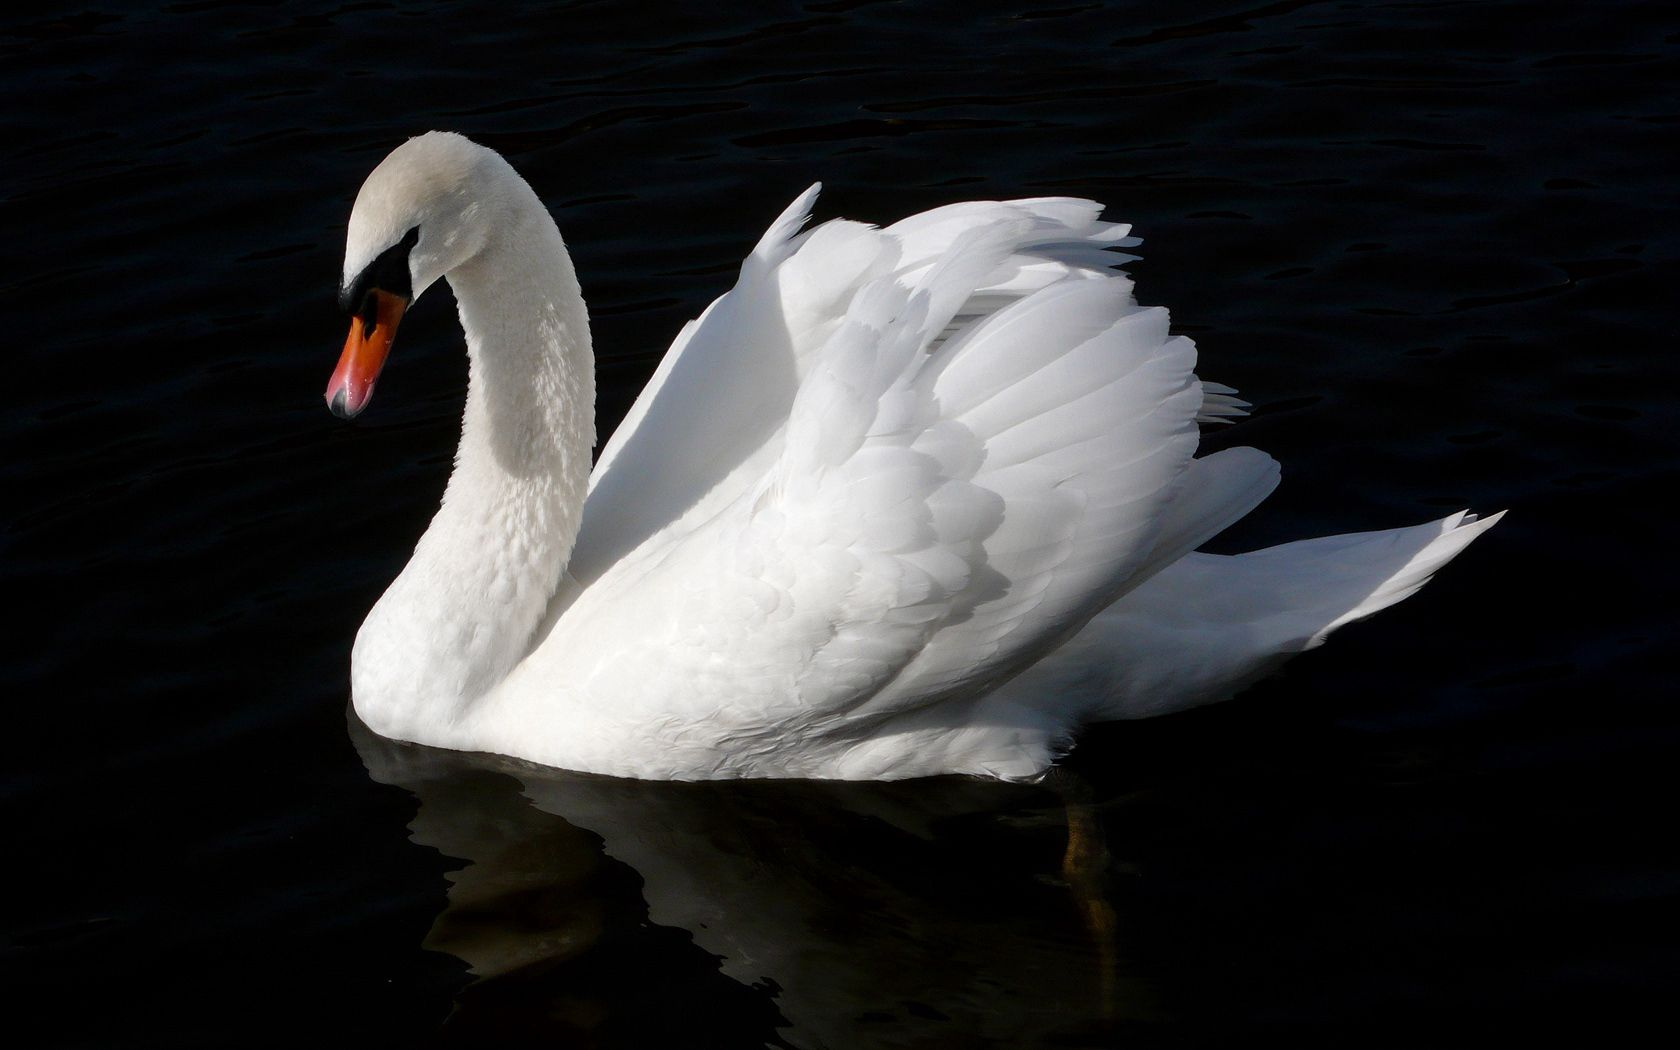 92686 download wallpaper Animals, Swan, Bird, Water, To Swim, Swim, Black Background screensavers and pictures for free